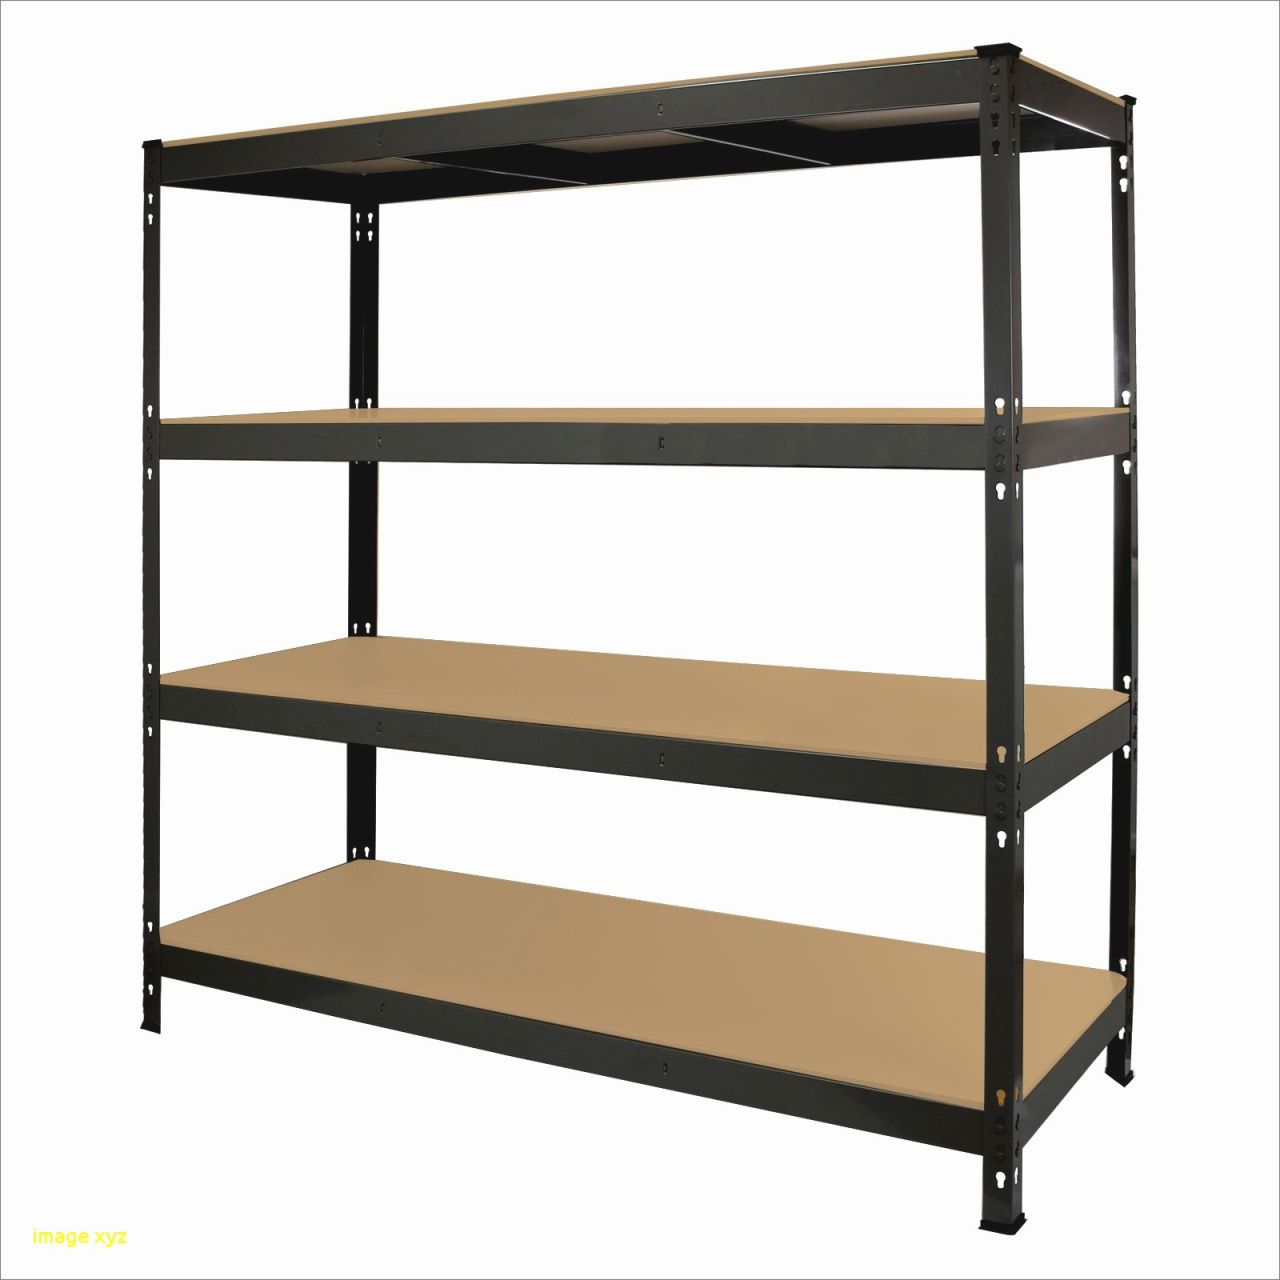 201 Etagere Murale Brico Depot Diy Garage Storage Cabinets Metal Bookcase Wall Storage Shelves